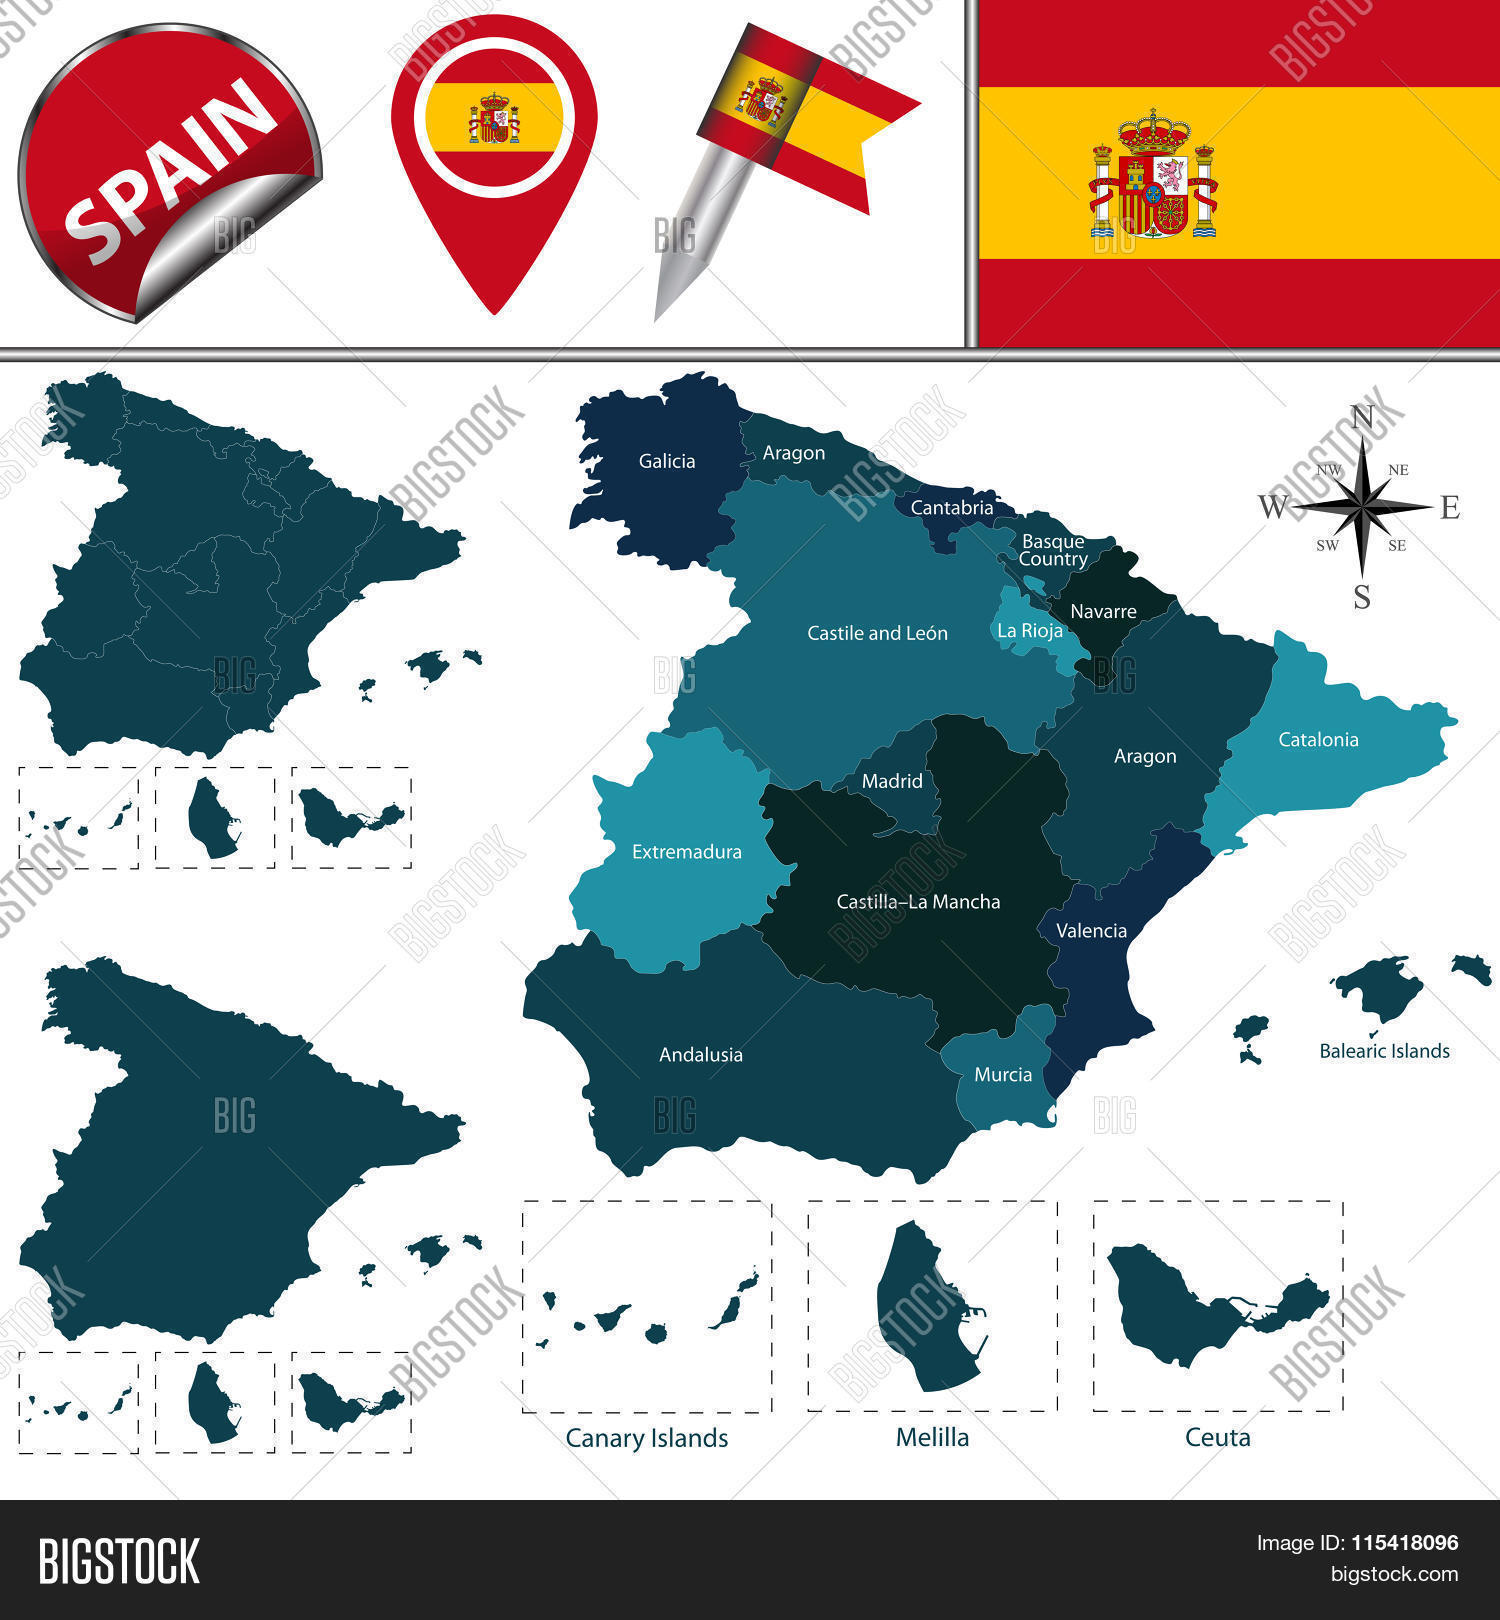 Map Of Spain Vector Free.Map Spain Vector Photo Free Trial Bigstock